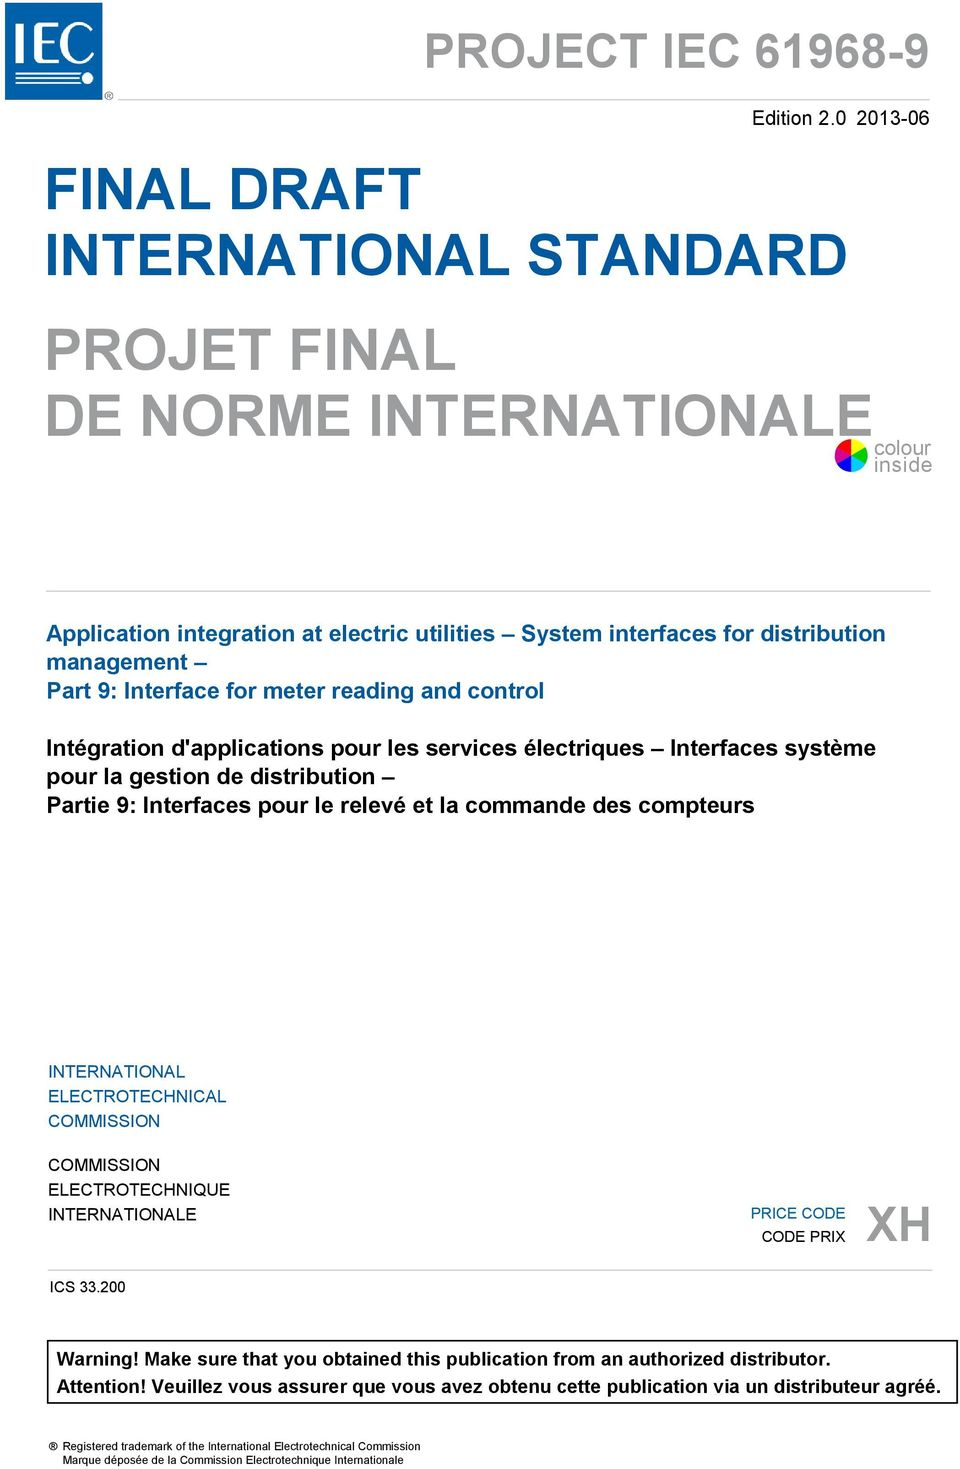 international electrotechnical commission standards pdf